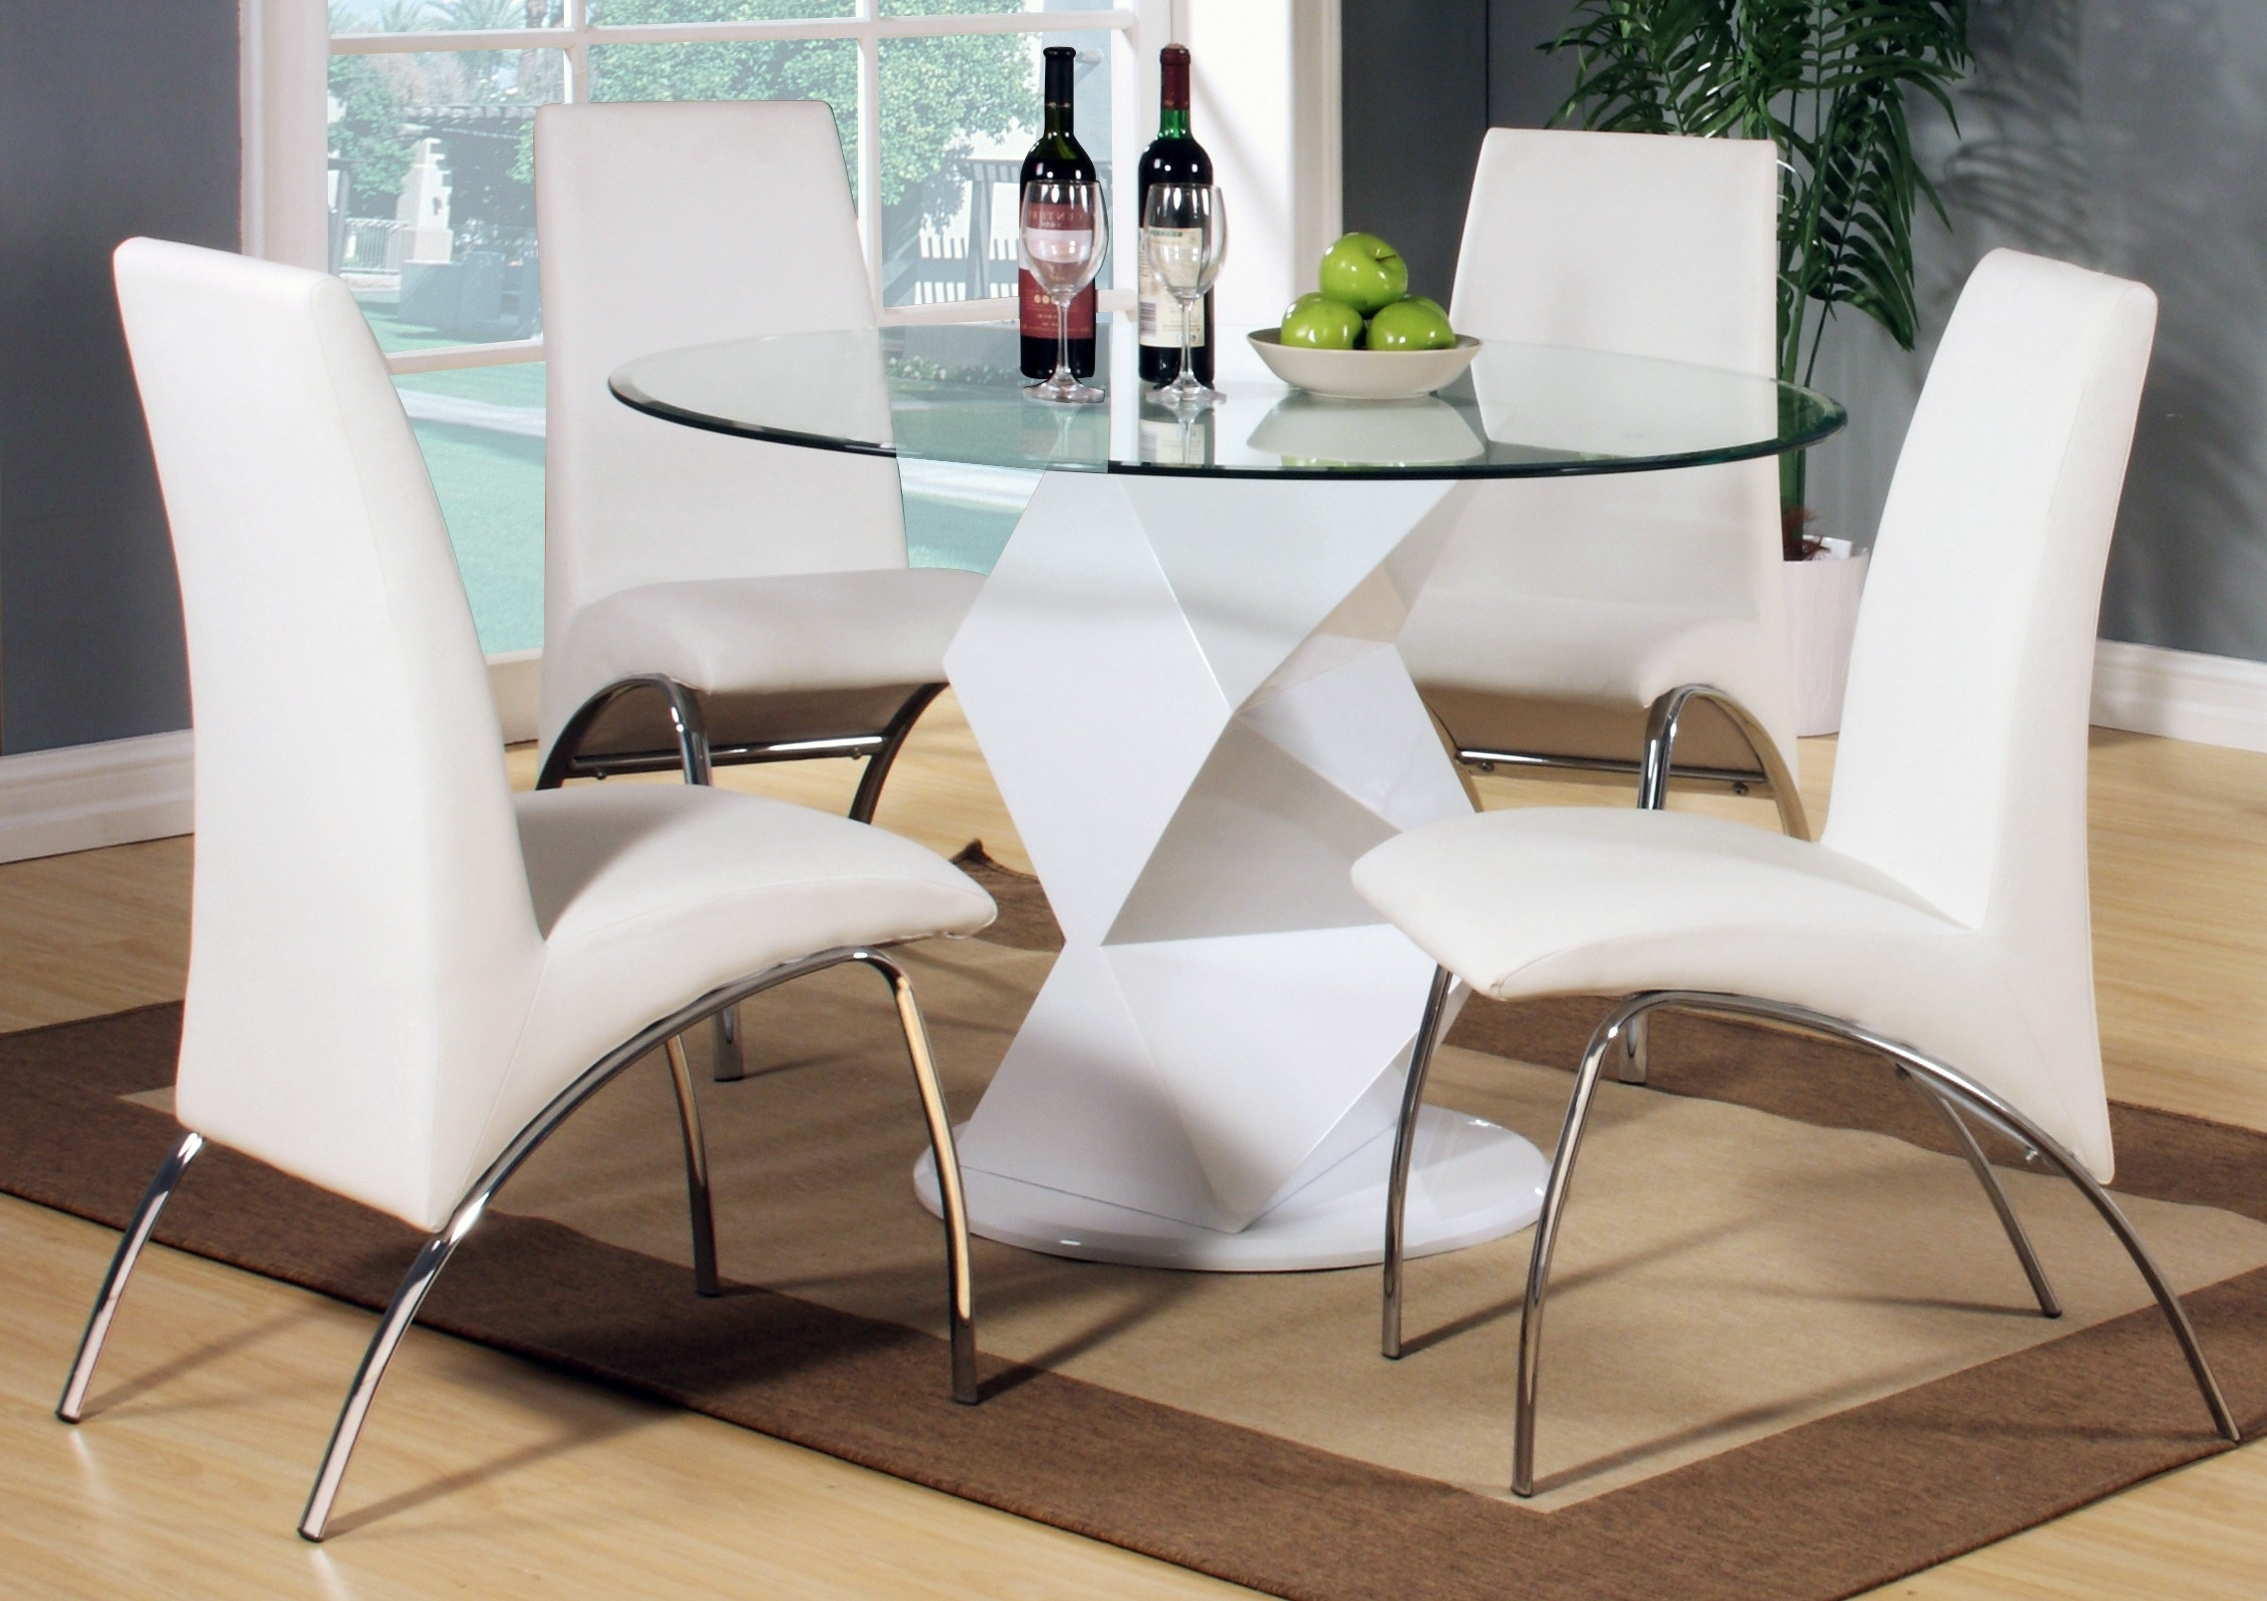 White High Gloss Oval Dining Tables For Most Popular Finn White High Gloss Round Dining Table Set 4 Seater (View 20 of 25)